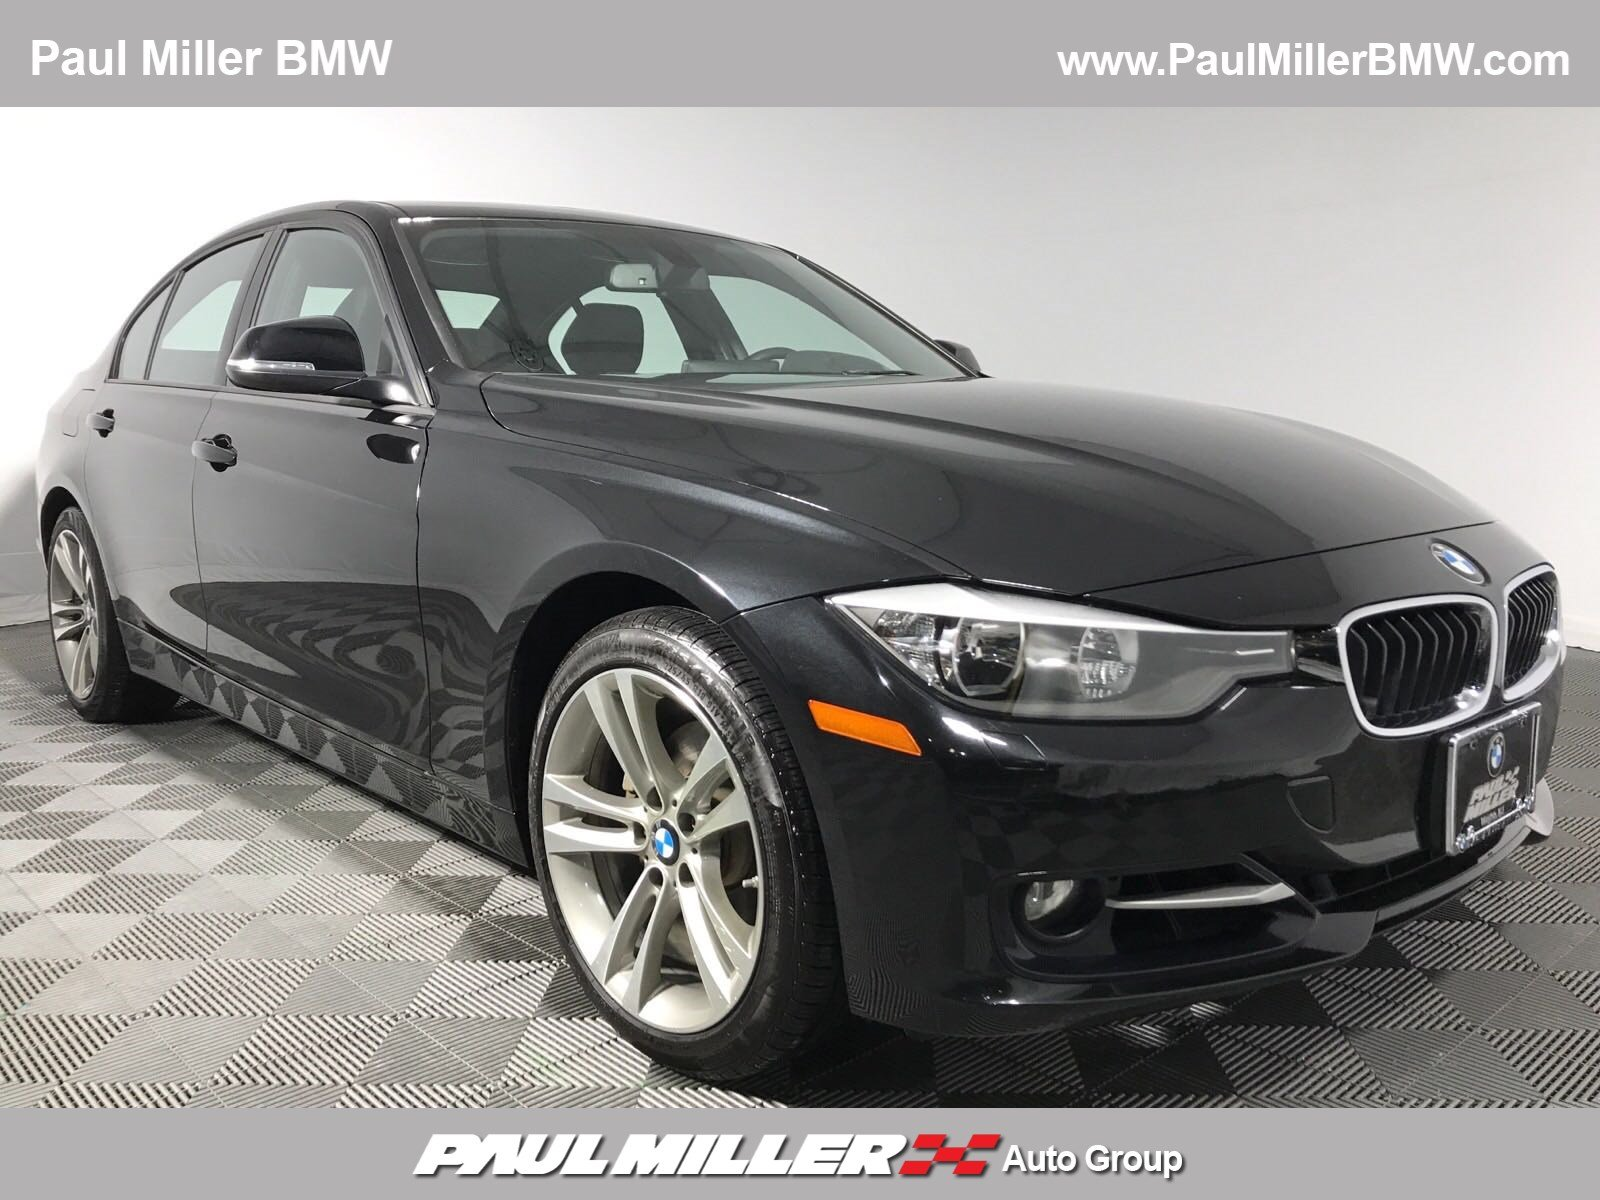 Certified PreOwned BMW Series I XDrive Dr Car In Wayne - Bmw 2015 car